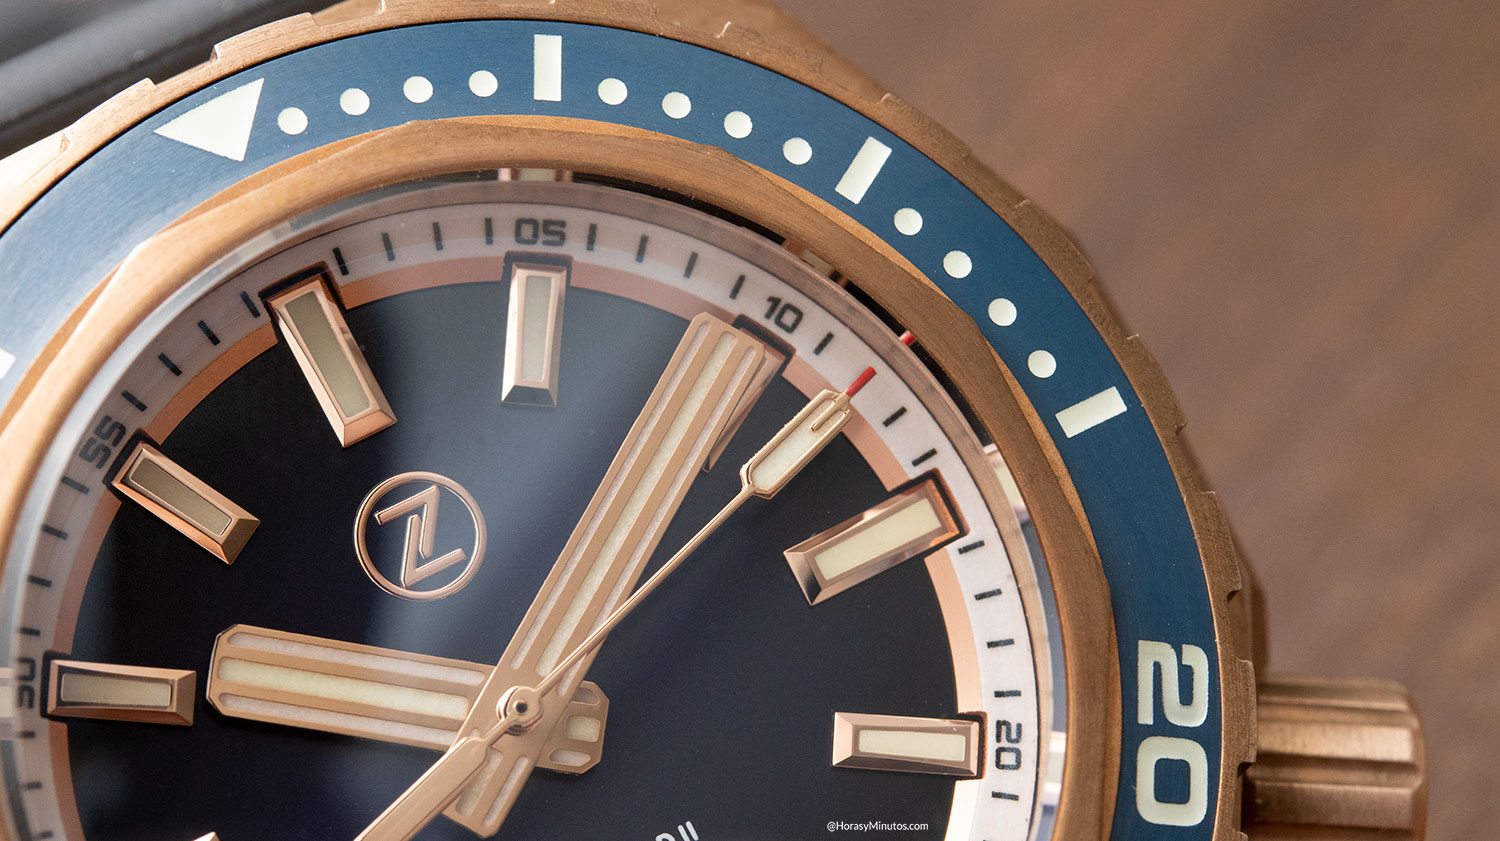 Detalle de la esfera del Super-LumiNova en el Zelos Watches Hammerhead 1000 M Bronze Midnight Blue